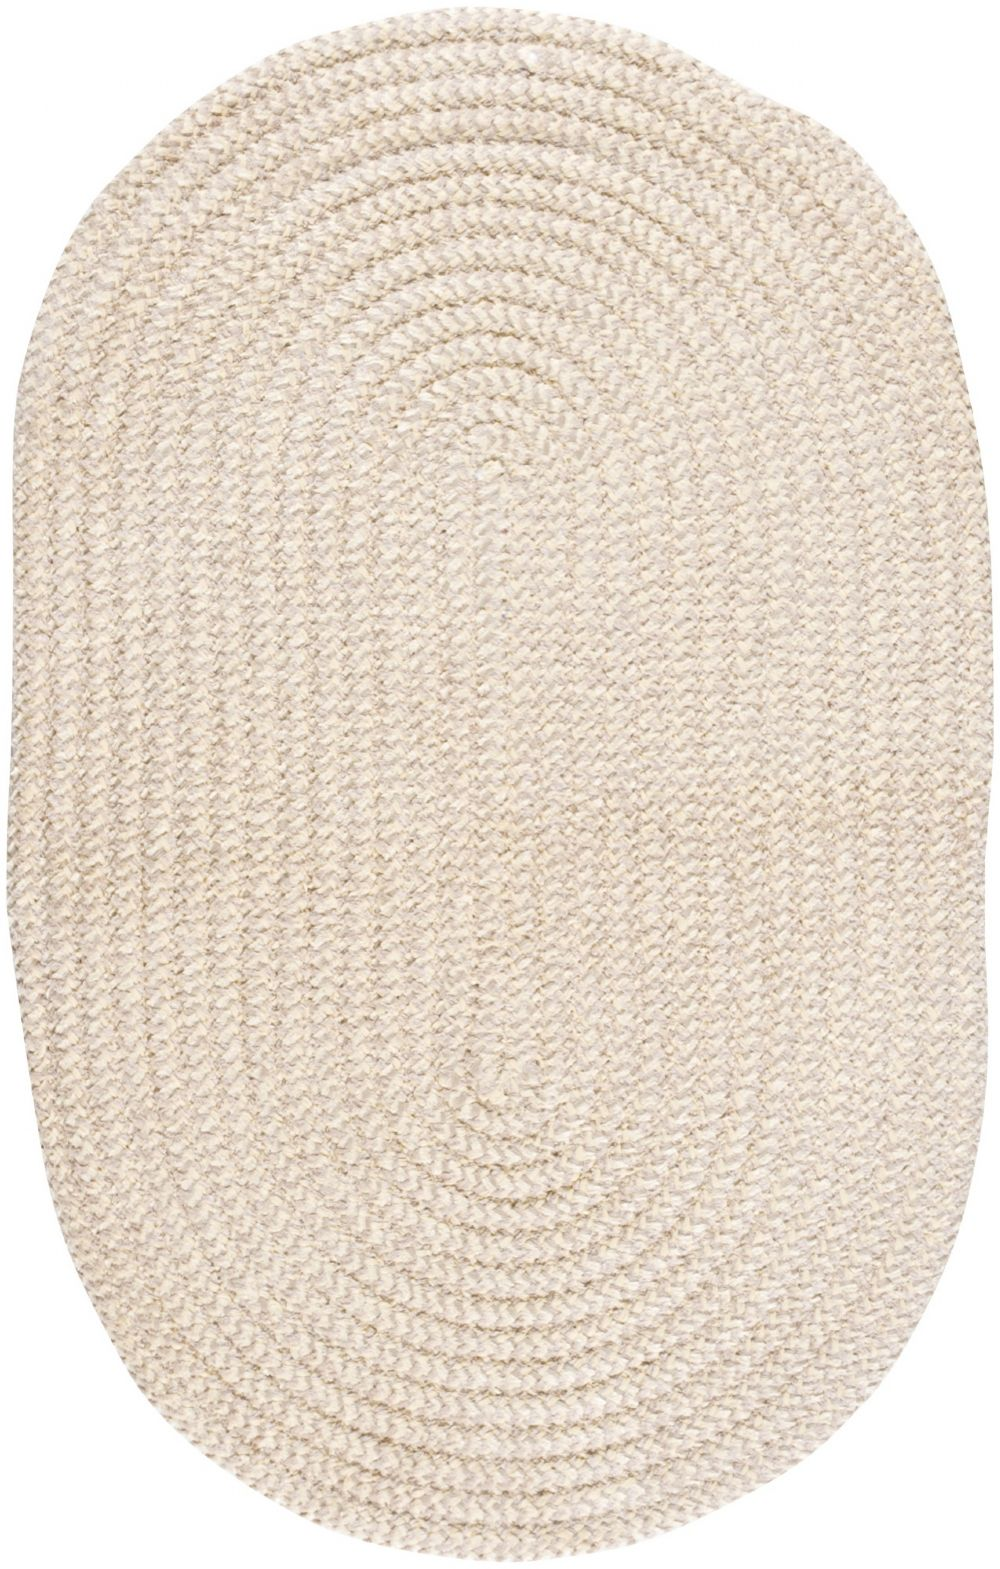 surya cabin basics braided area rug collection